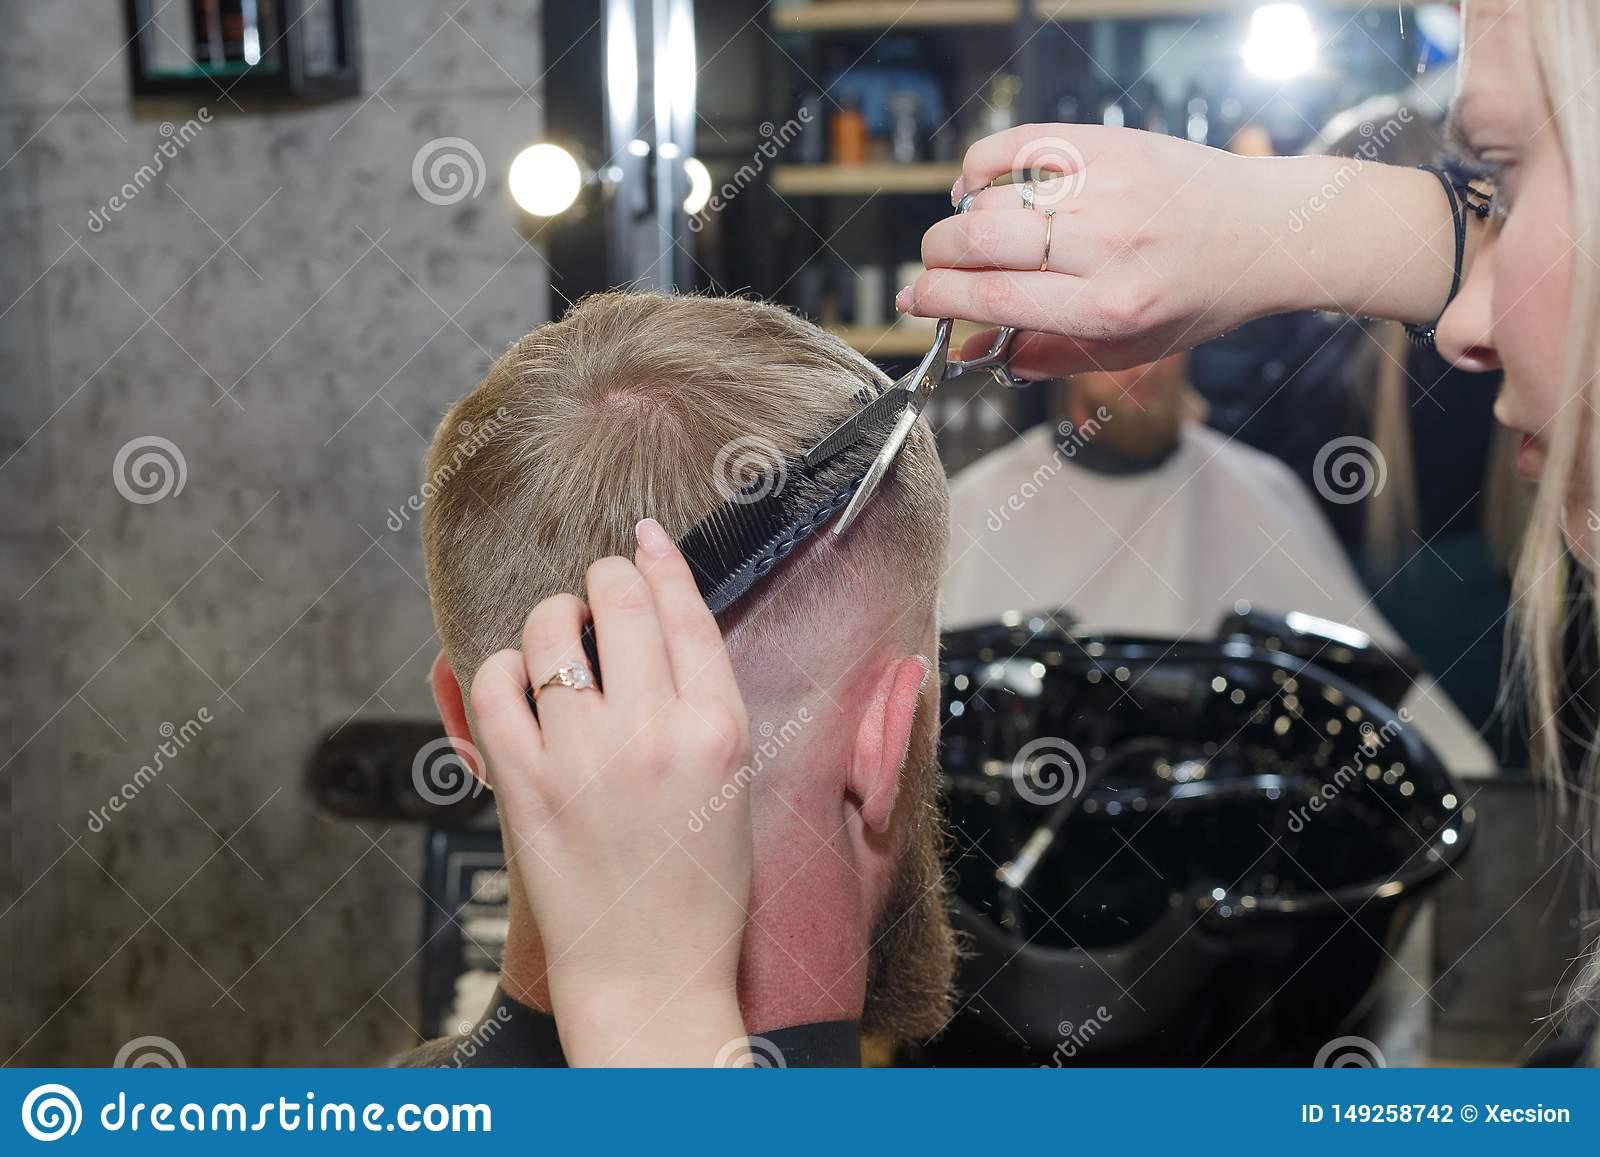 Professional hairdresser hair styling of their client. The master provides a haircut.